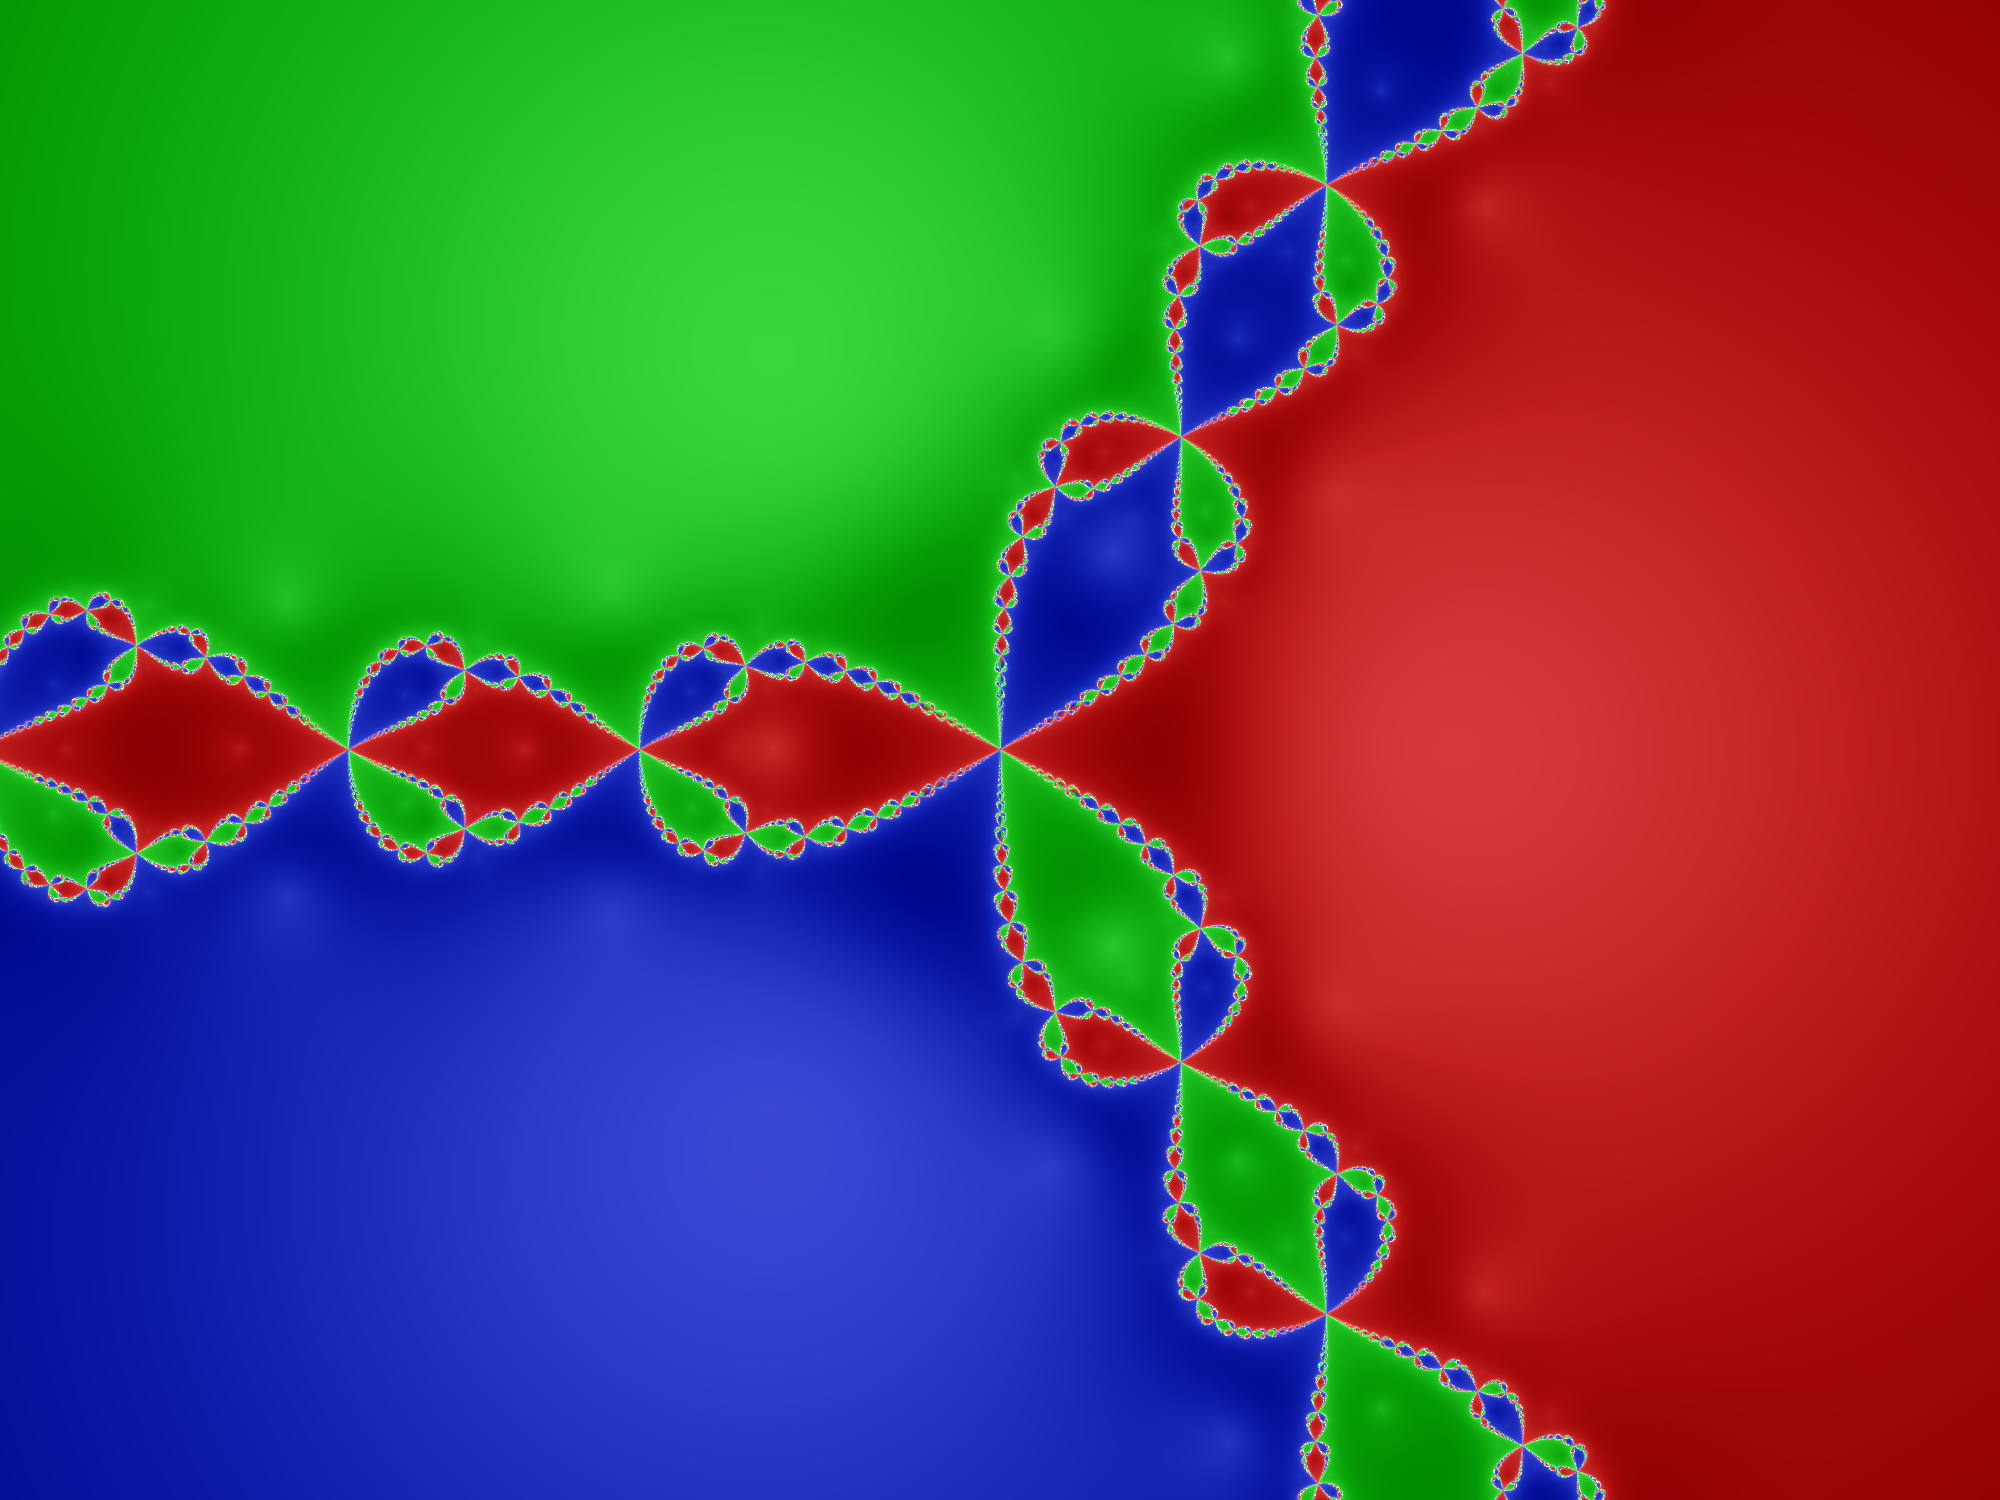 Julia set for the rational function associated to Newton's method for ƒ:z→z³−1.  The plane is divided symmetrically into three regions, colored red, green, and blue.  The boundary of each two regions (red and green, say) is inhabited by a series of leaf shapes of the third color (blue), and the boundaries between the main regions (green, say) and the (blue) leaves are inhabited by smaller leaves again of the other color (red), and so on ad infinitum.  The boundaries are therefore an infinitely detailed filigree of smaller and smaller leaves of all three colors.